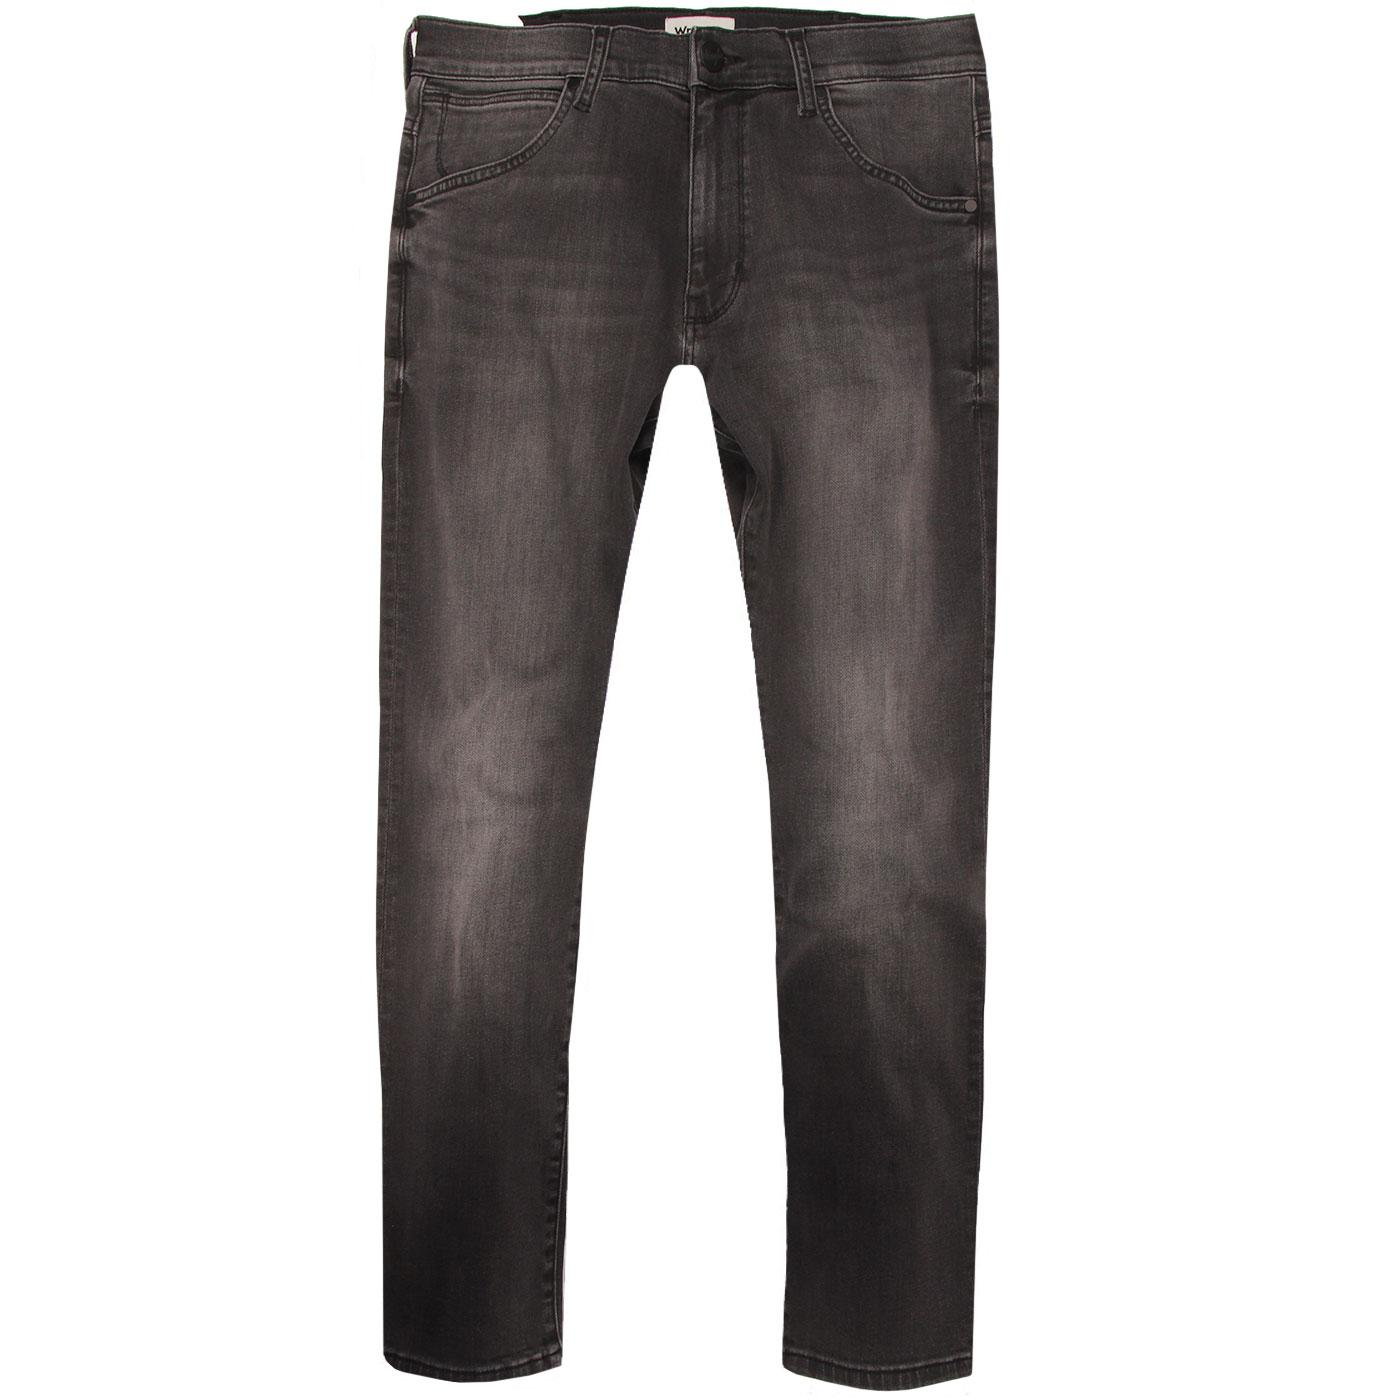 Larston WRANGLER Slim Tapered Denim Jeans - STEEL